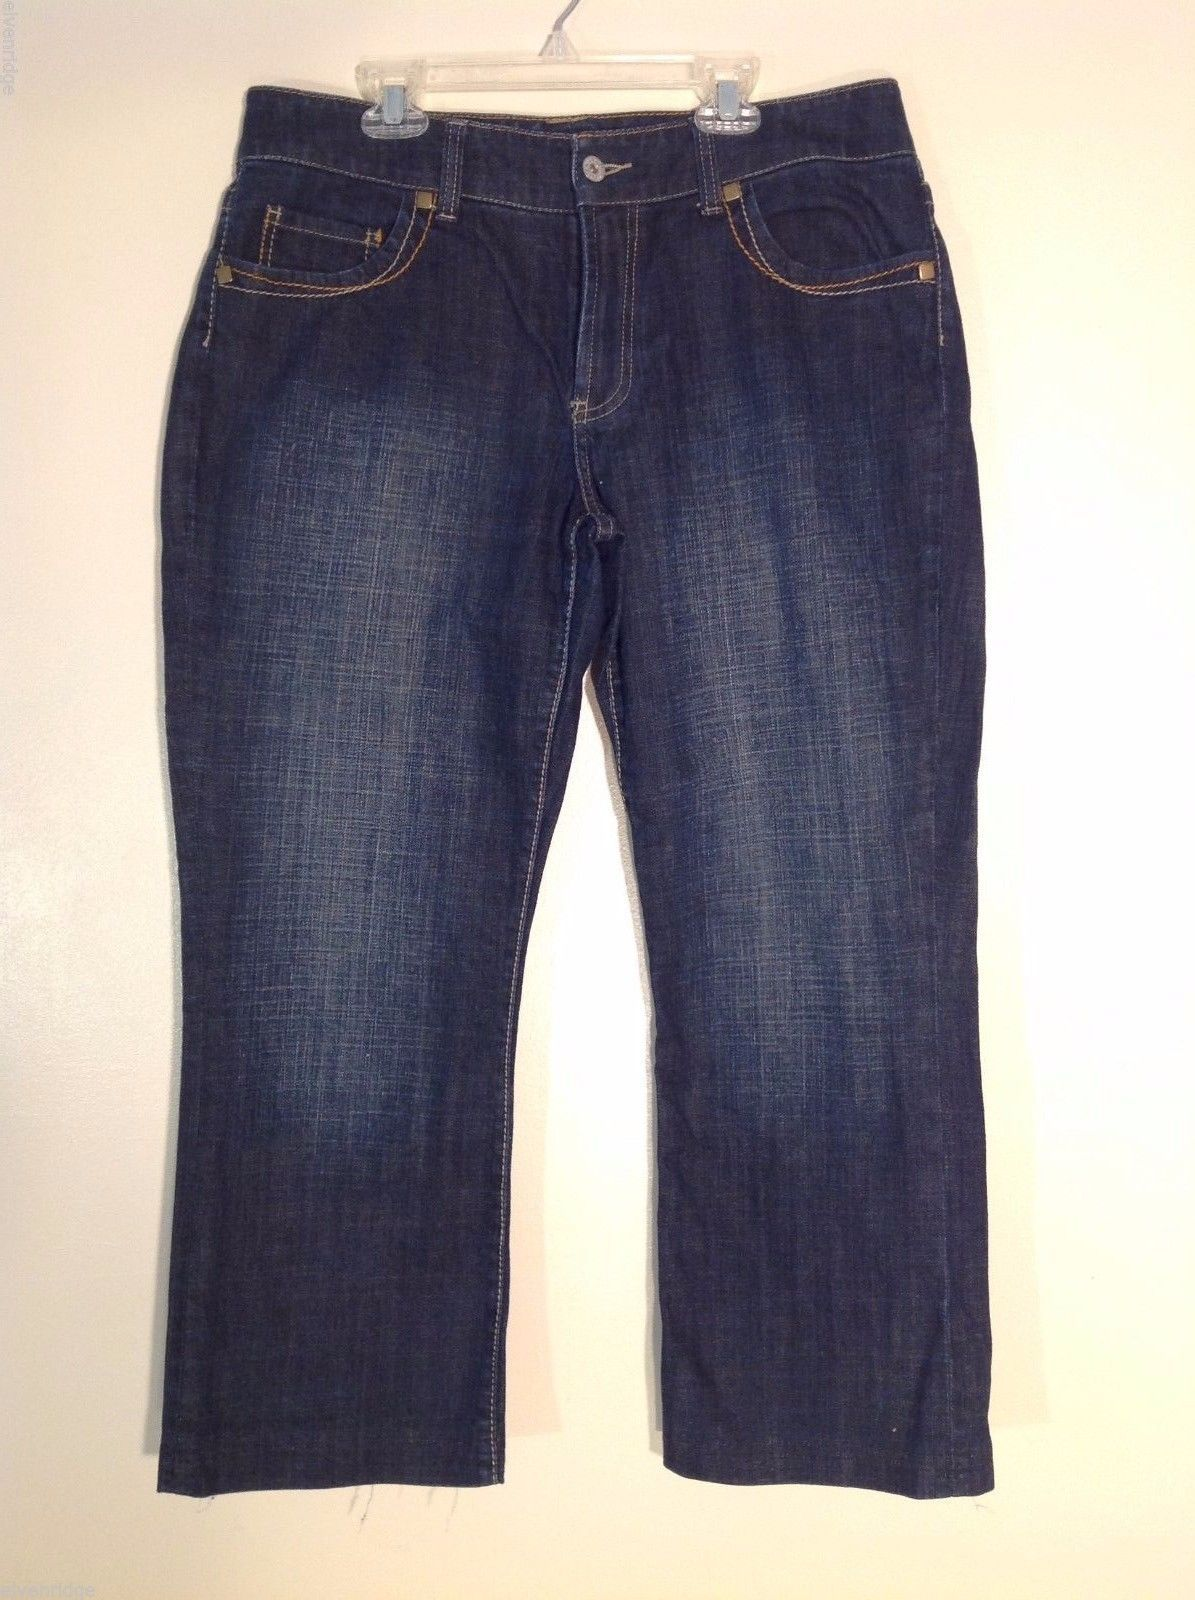 Women's Chico's Platinum Dark Blue Denim Jeans, Size 2